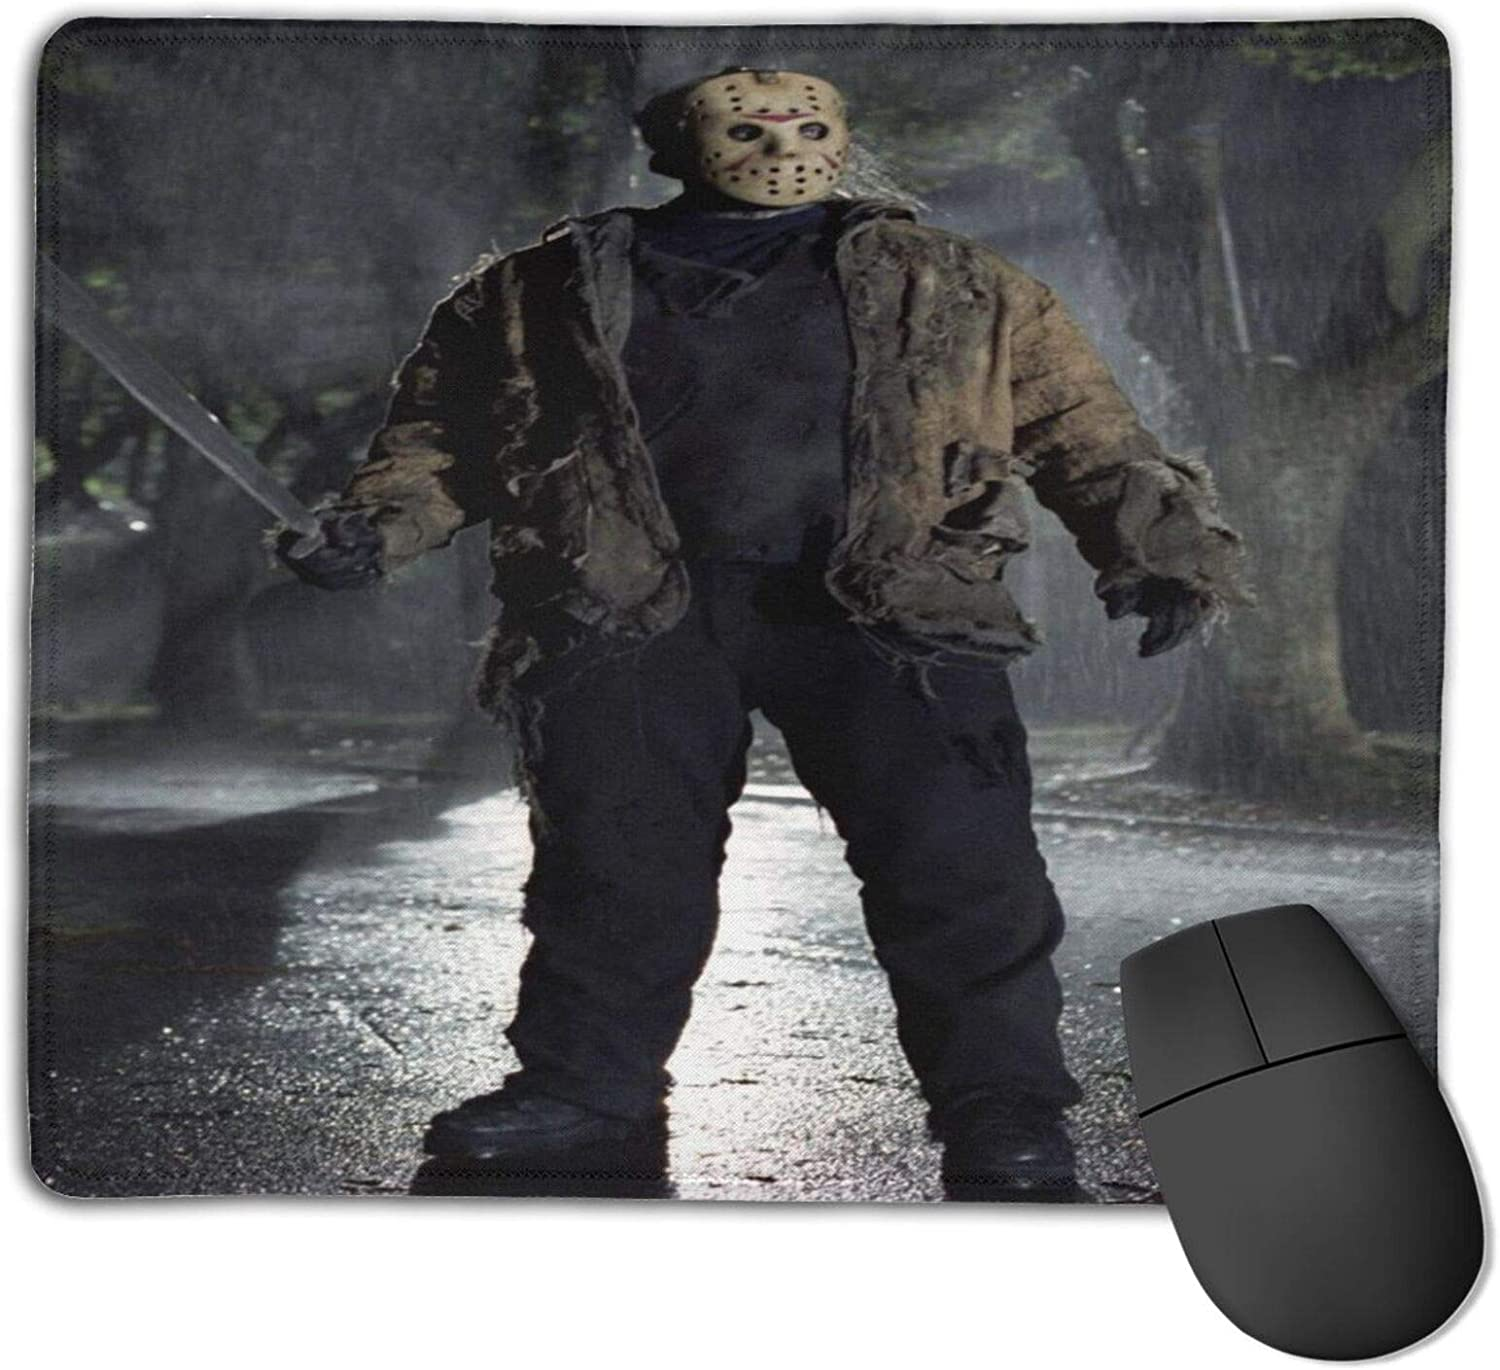 Jason Voorhees (1) Customized Designs Non-Slip Rubber Base Gaming Mouse Pads for Mac,22cm×18cm, Pc, Computers. Ideal for Working Or Game